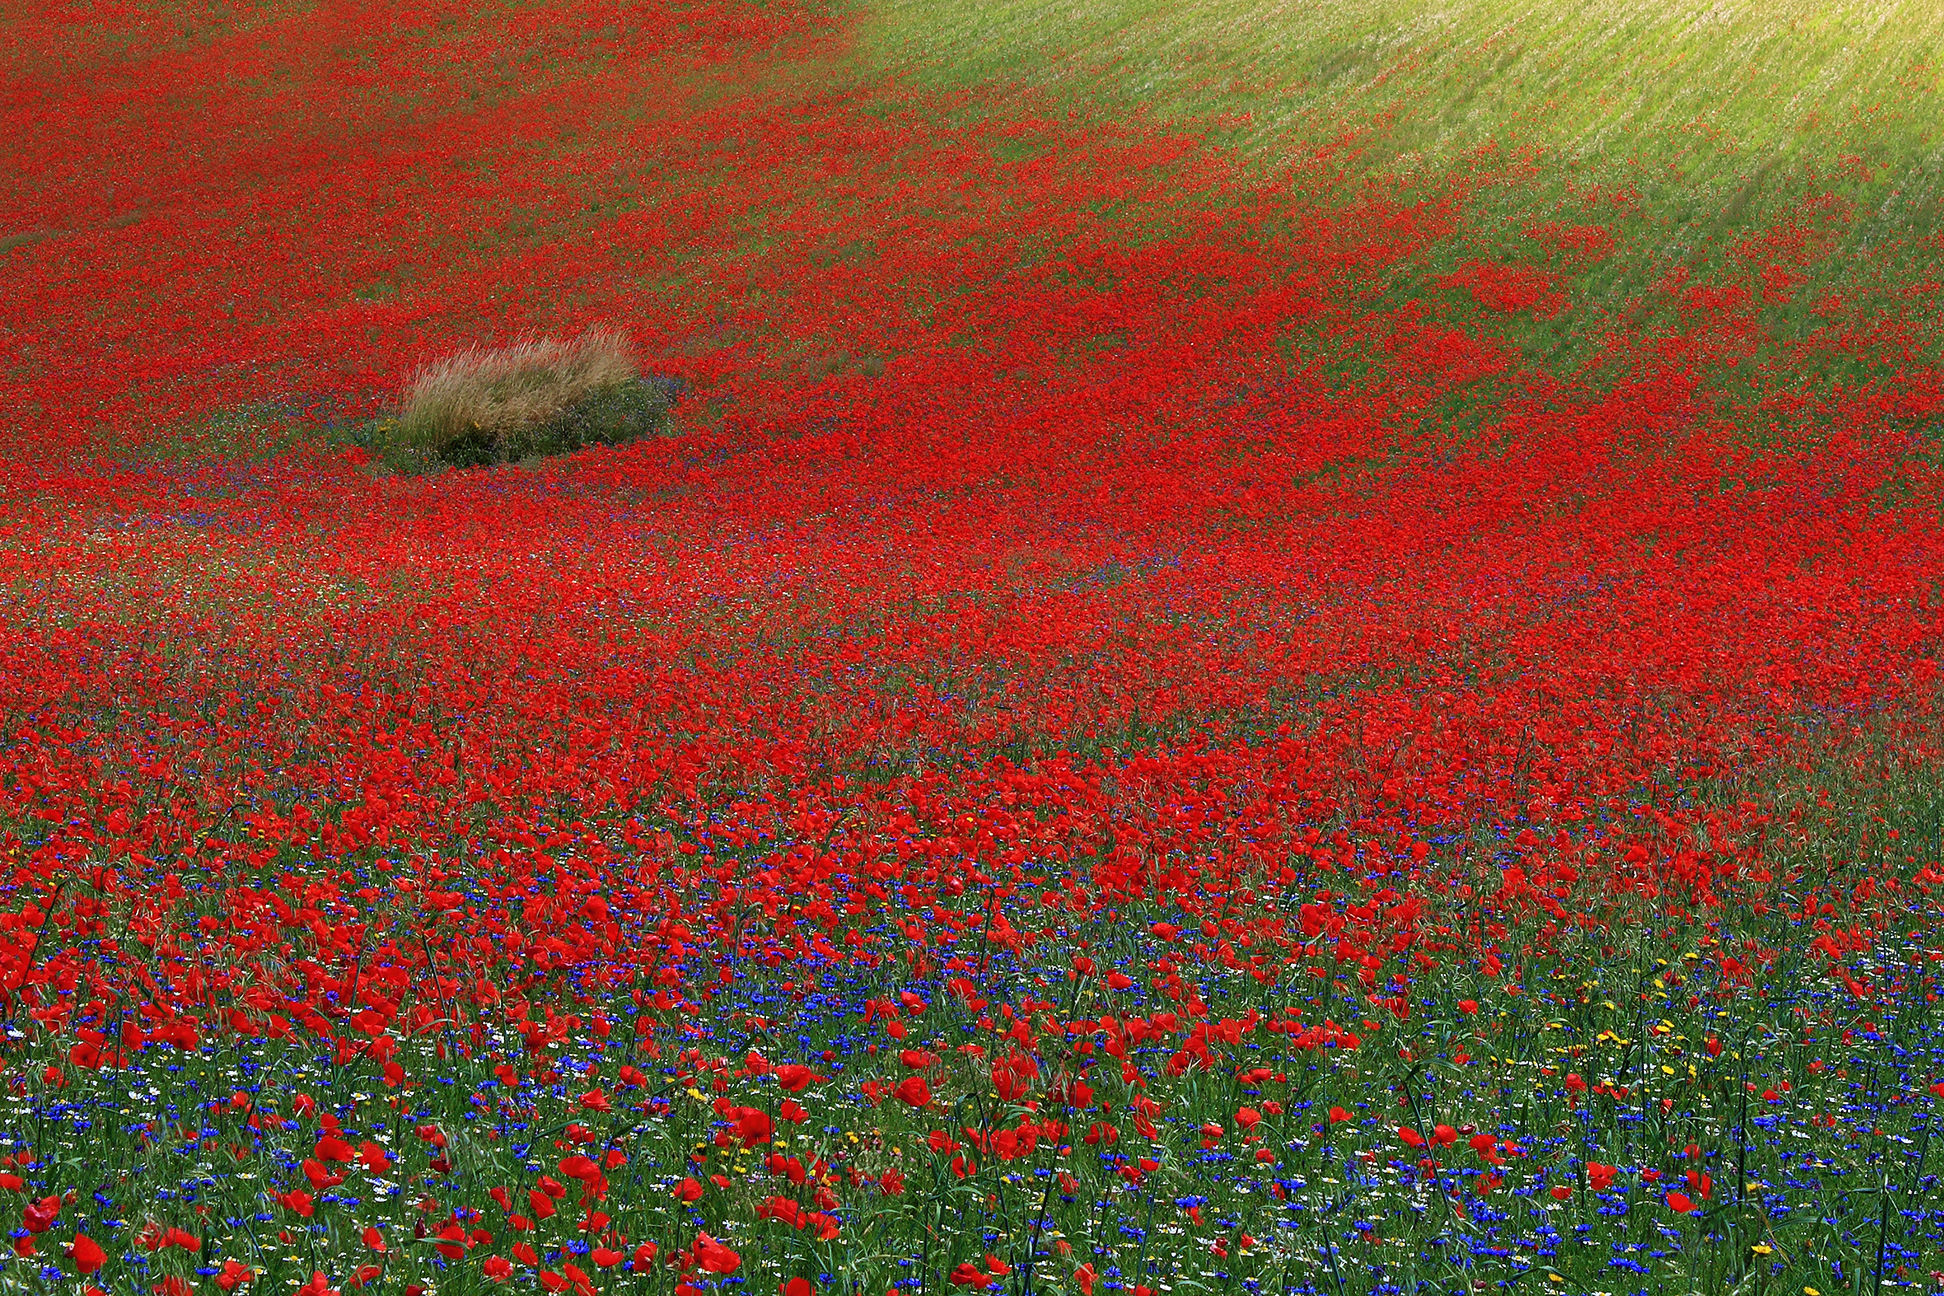 In the red of poppies...